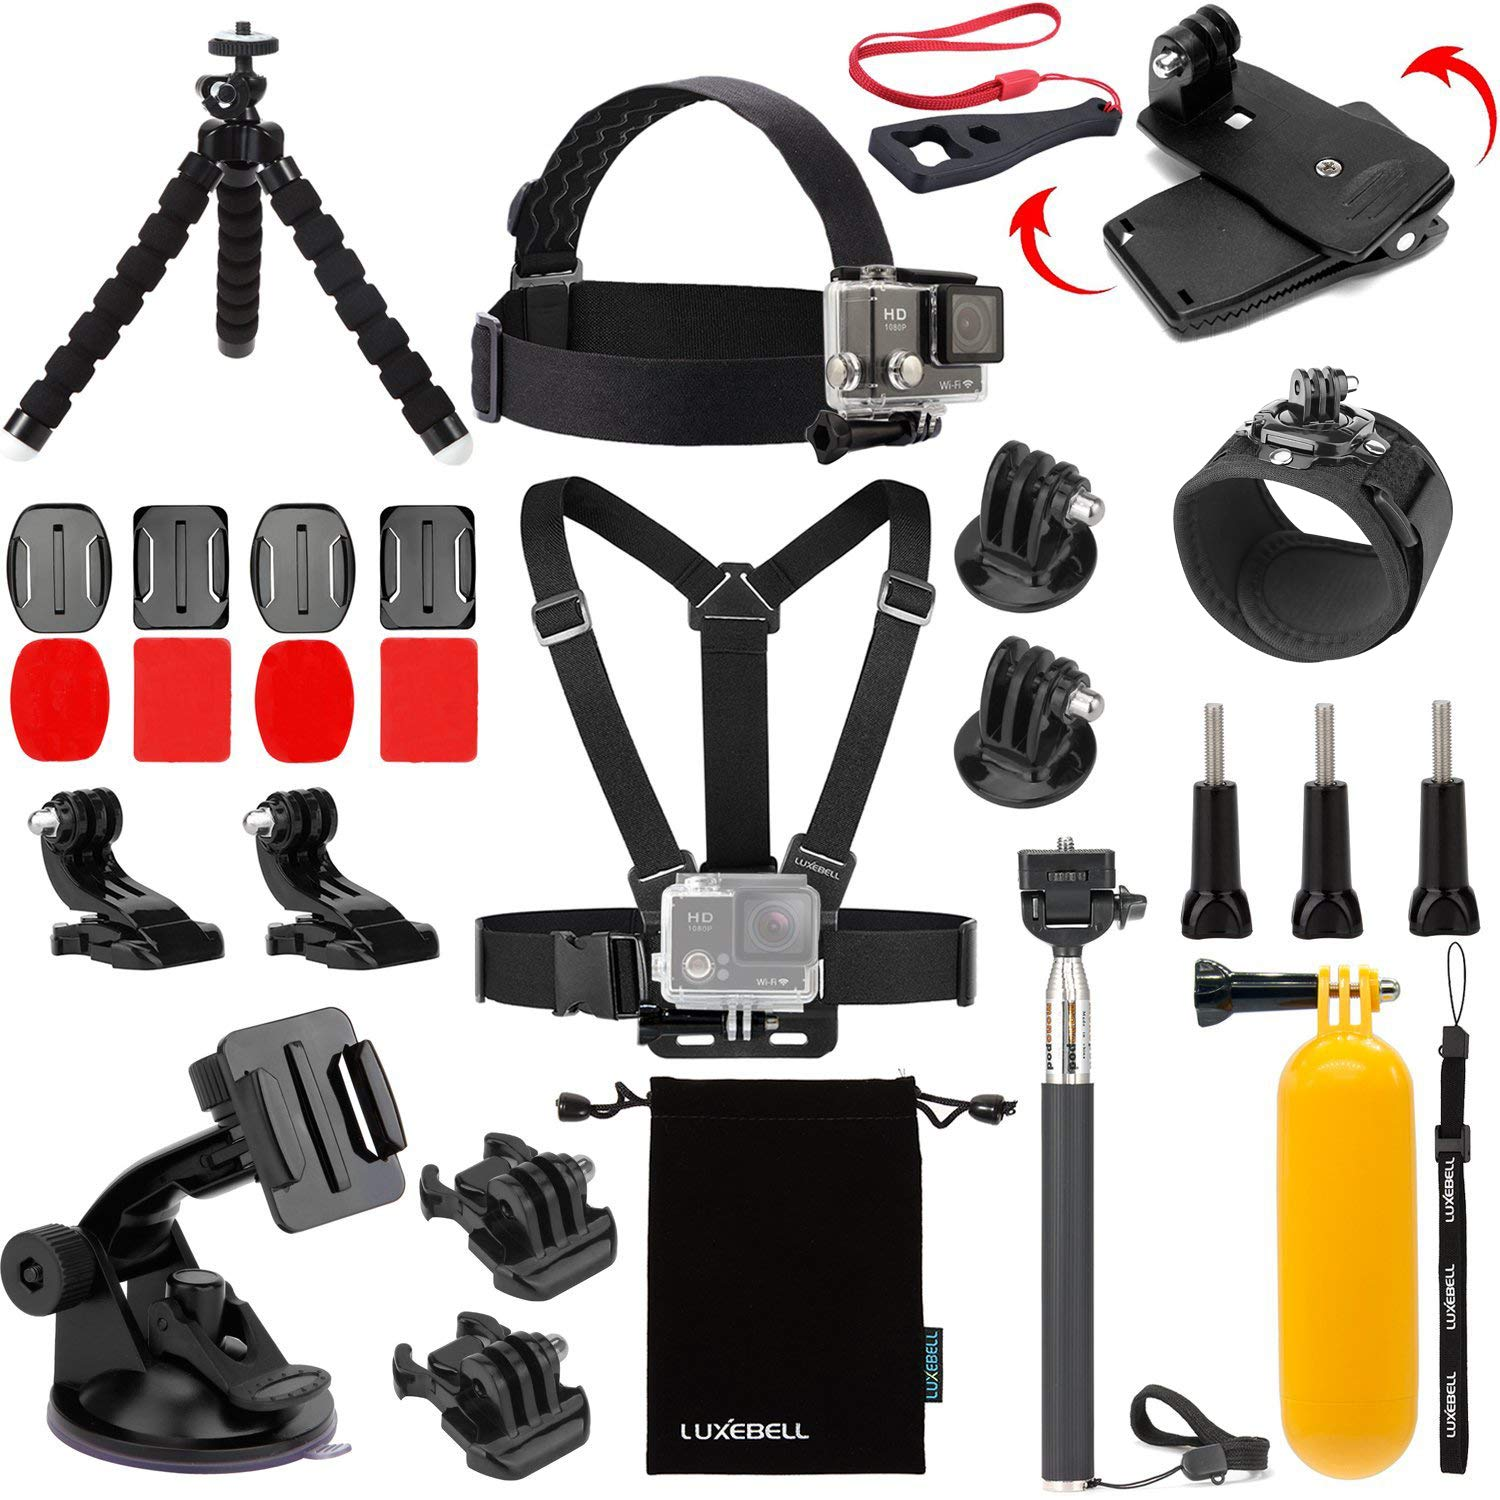 Luxebell Accessories Kit for AKASO EK5000 EK7000 4K WIFI Action Camera Gopro Hero 6 5/Session 5/Hero 4/3+/3/2/1 Fusion (14 Items) by Luxebell